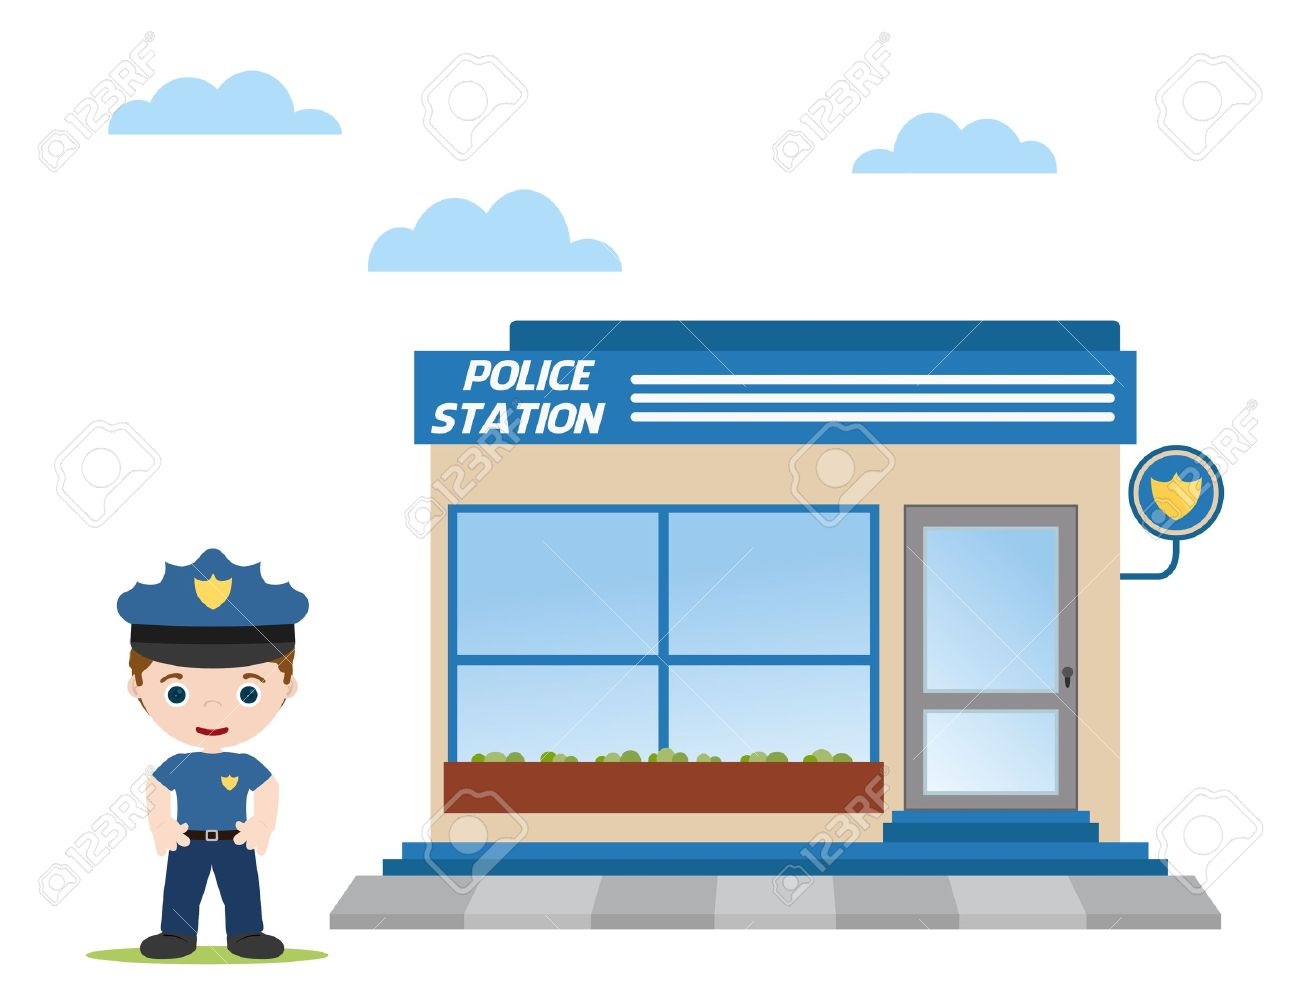 police station with police officer in front - 14782445